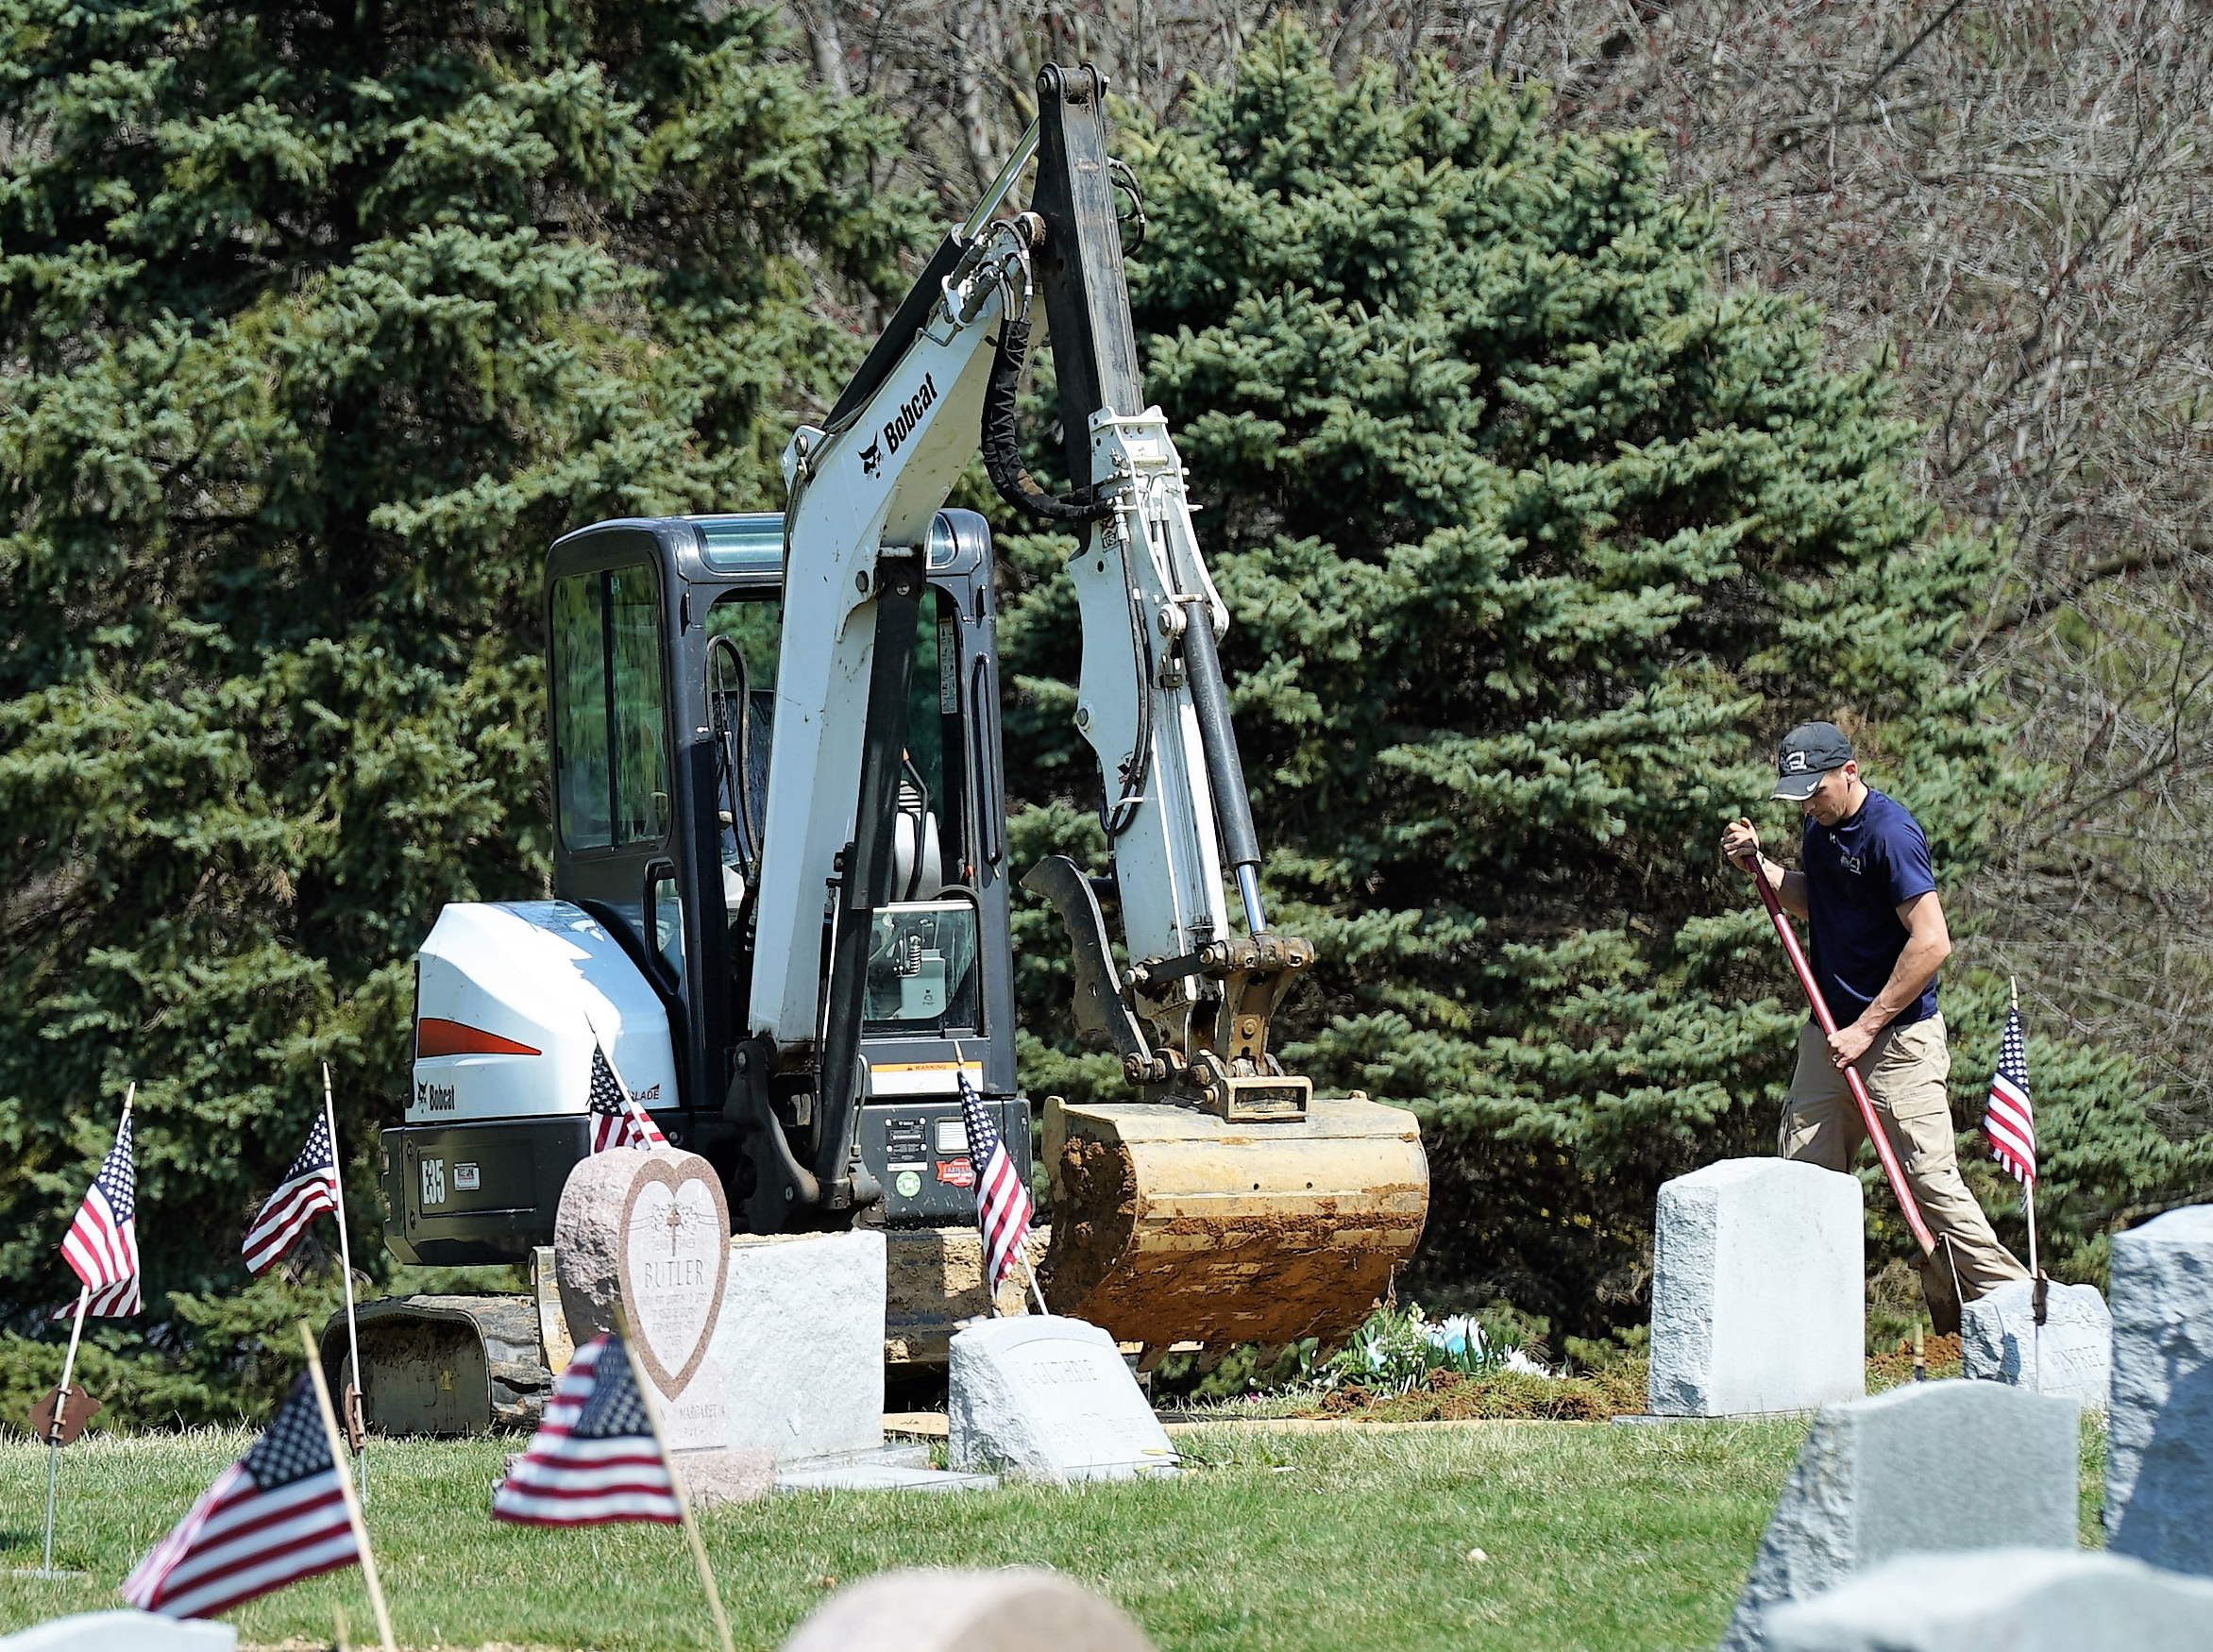 The grave digger at work. Elam United Methodist Church Cemetery. Glen Mills, Pennsylvania.